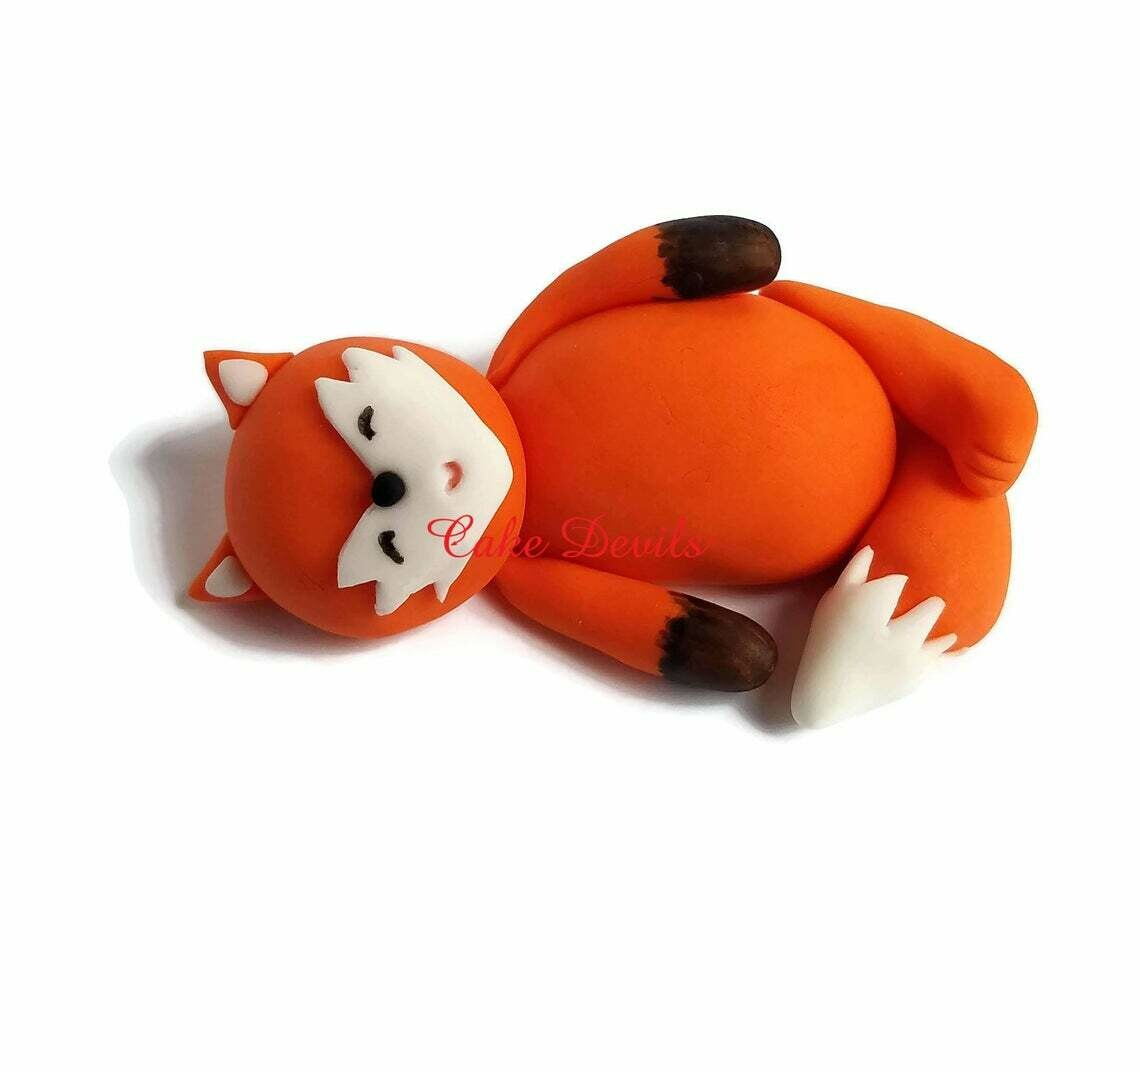 Fondant Sleeping Fox Cake Topper